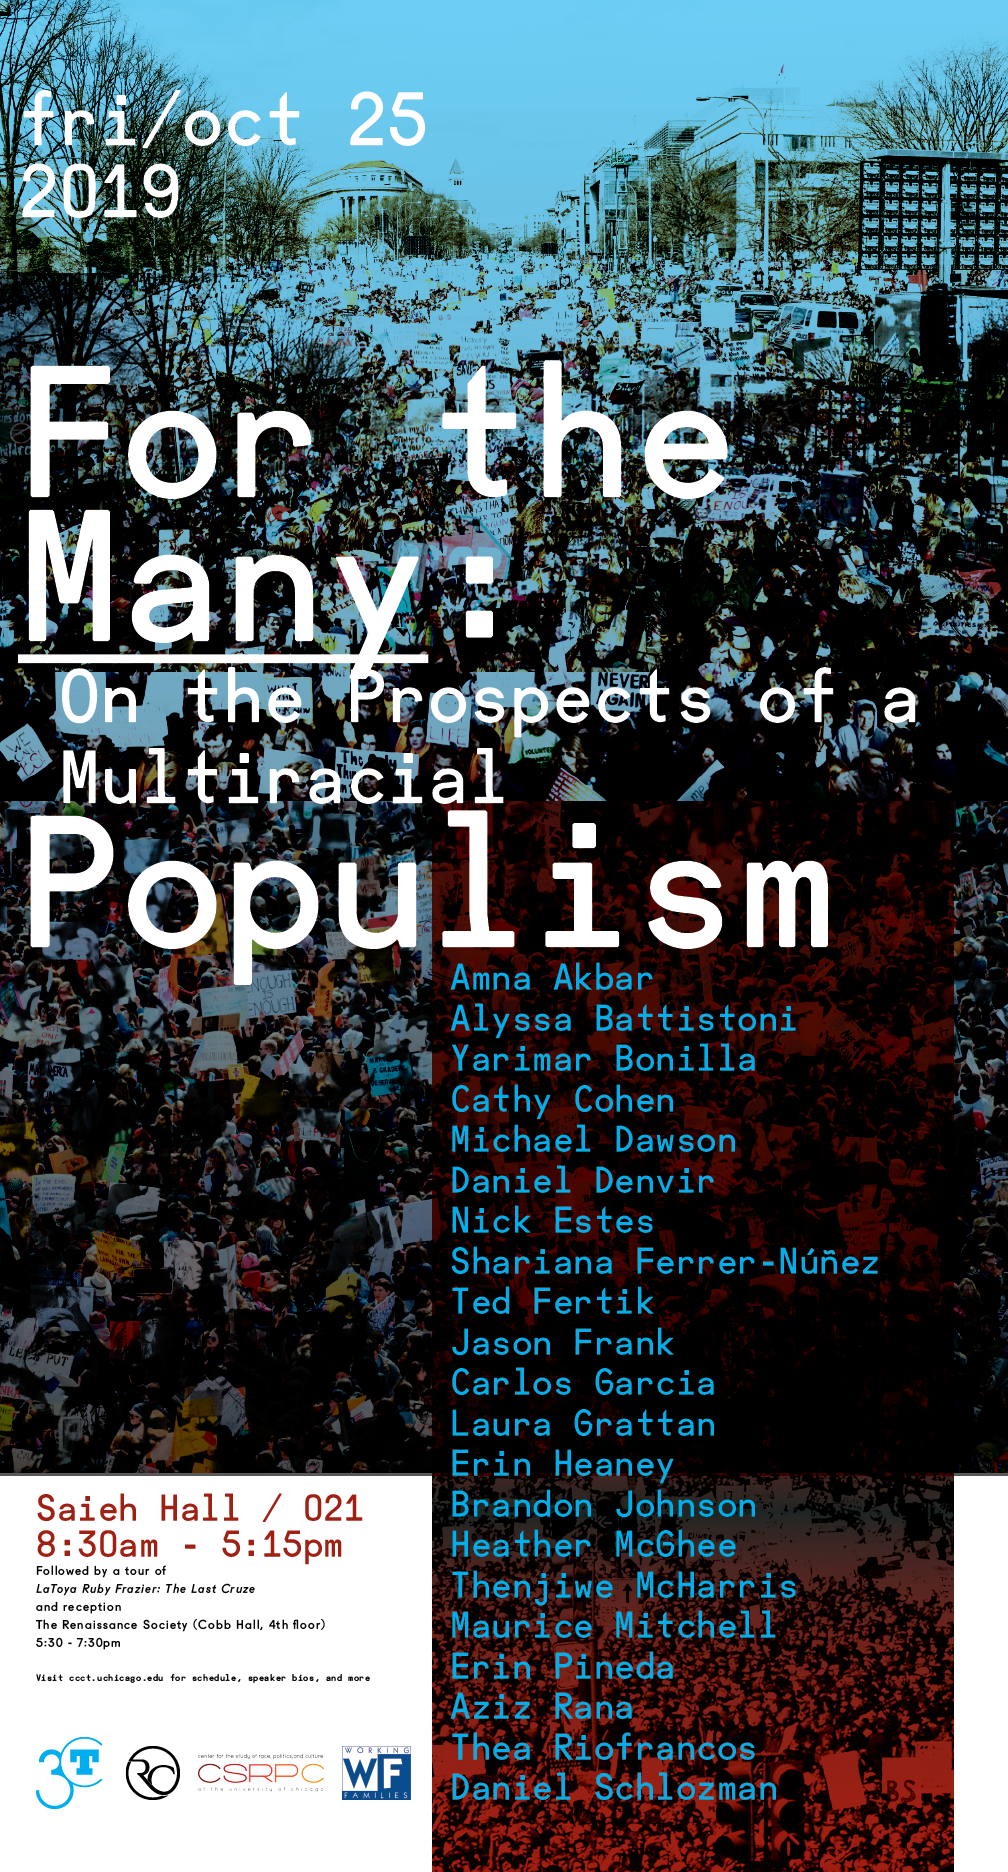 Copy of For the Many: On the Prospects of Multiracial Populism